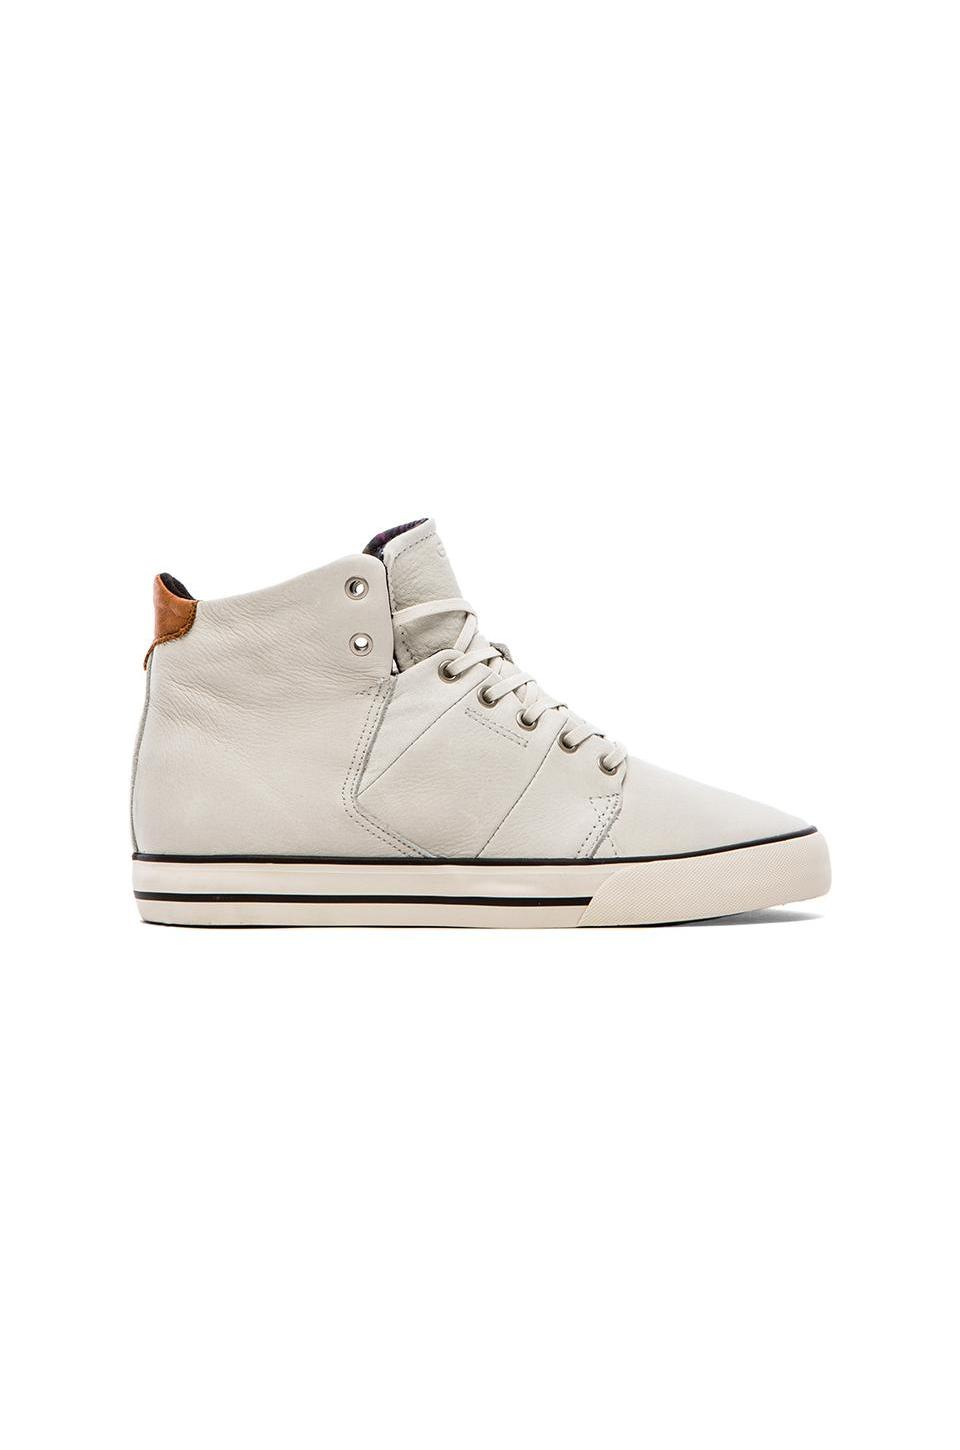 Globe Los Angered Sneaker in White